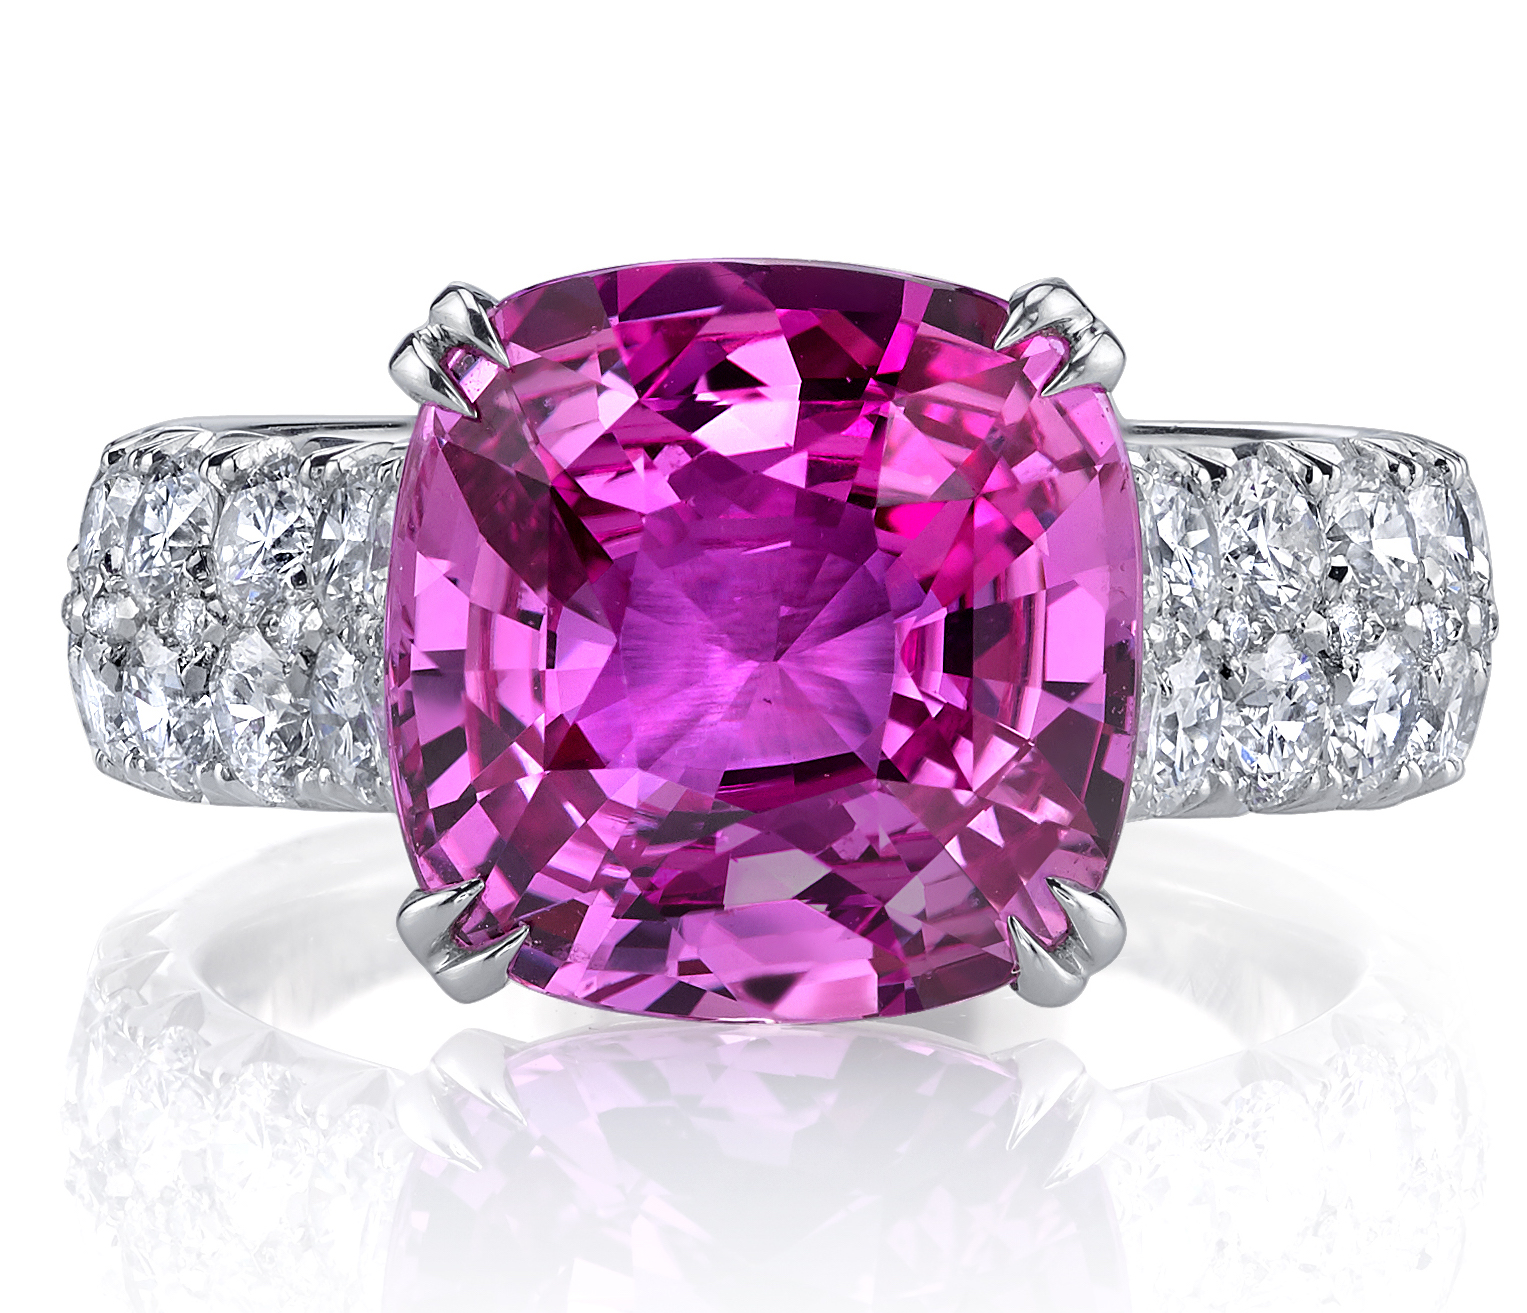 Omi Privé one-of-a-kind pink sapphire ring | JCK On Your Market